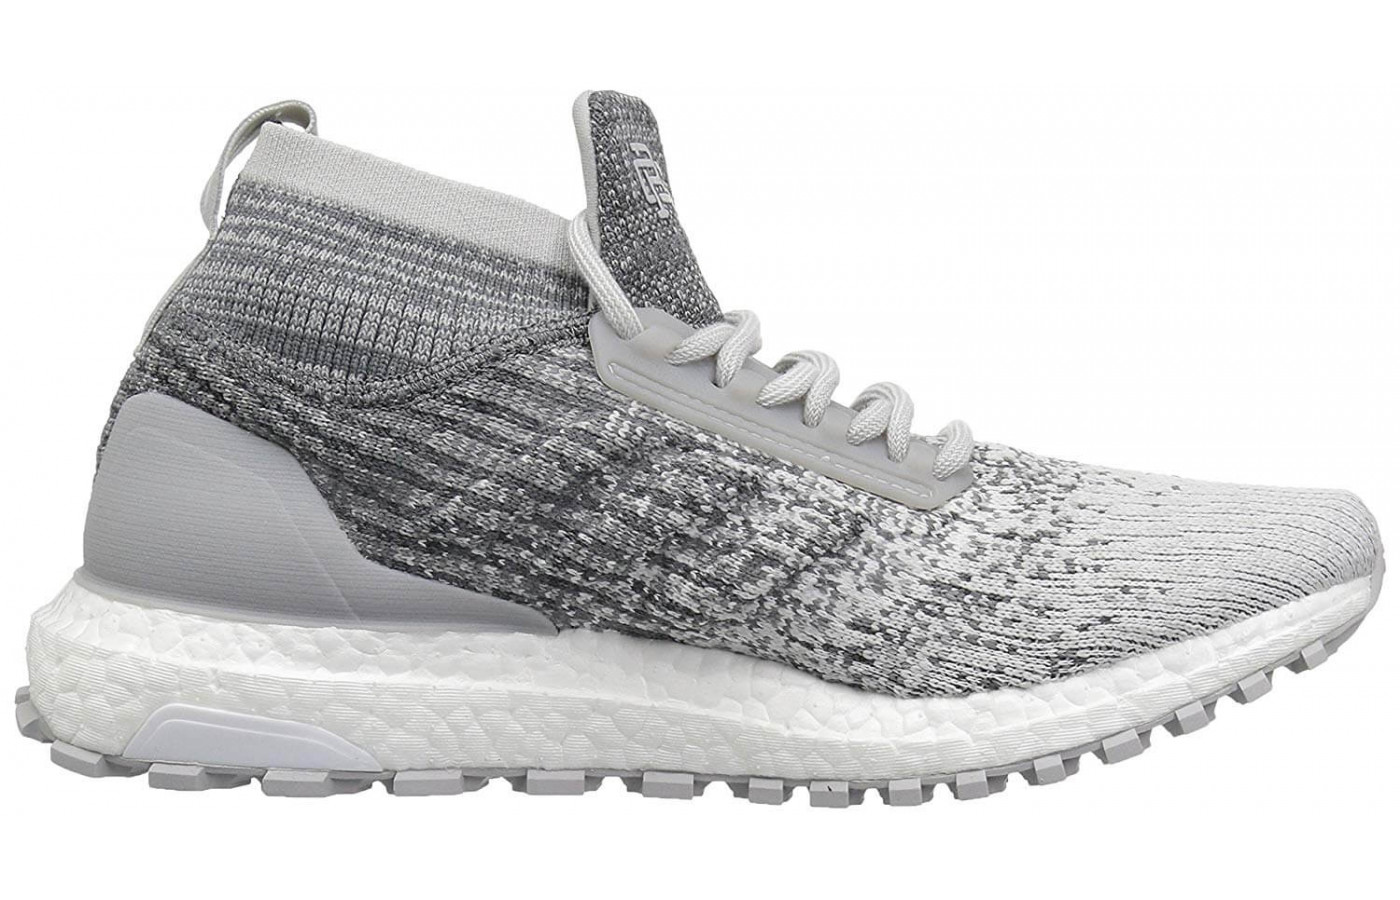 7aaccb7d711 ... The Adidas X Reigning Champ Ultraboost are made of breathable mesh ...